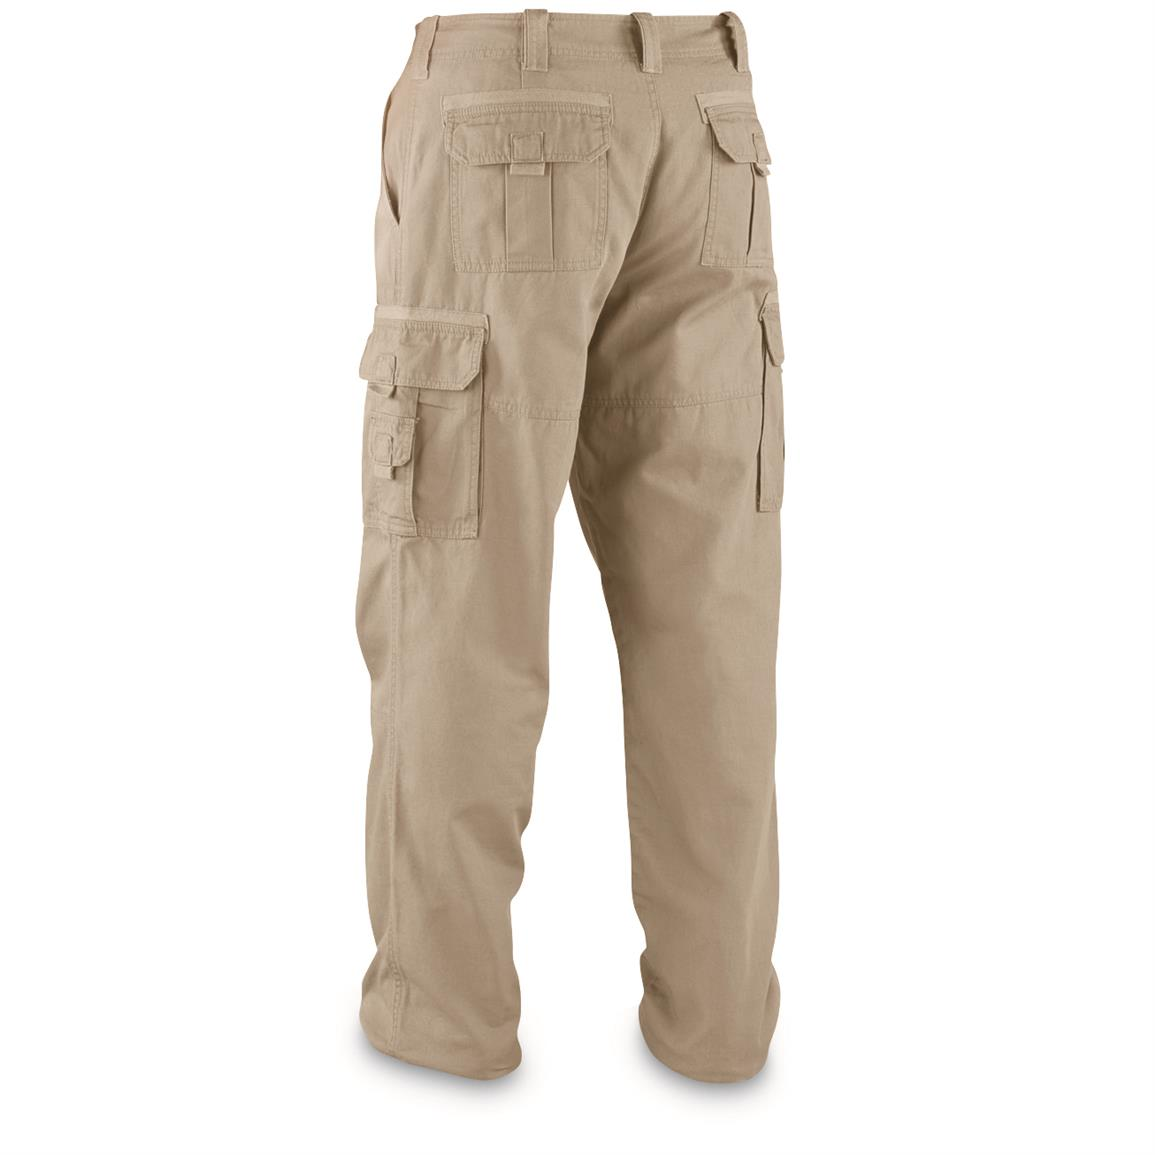 Guide Gear Men's Flannel Lined Cargo Pants - 224165, Insulated ...